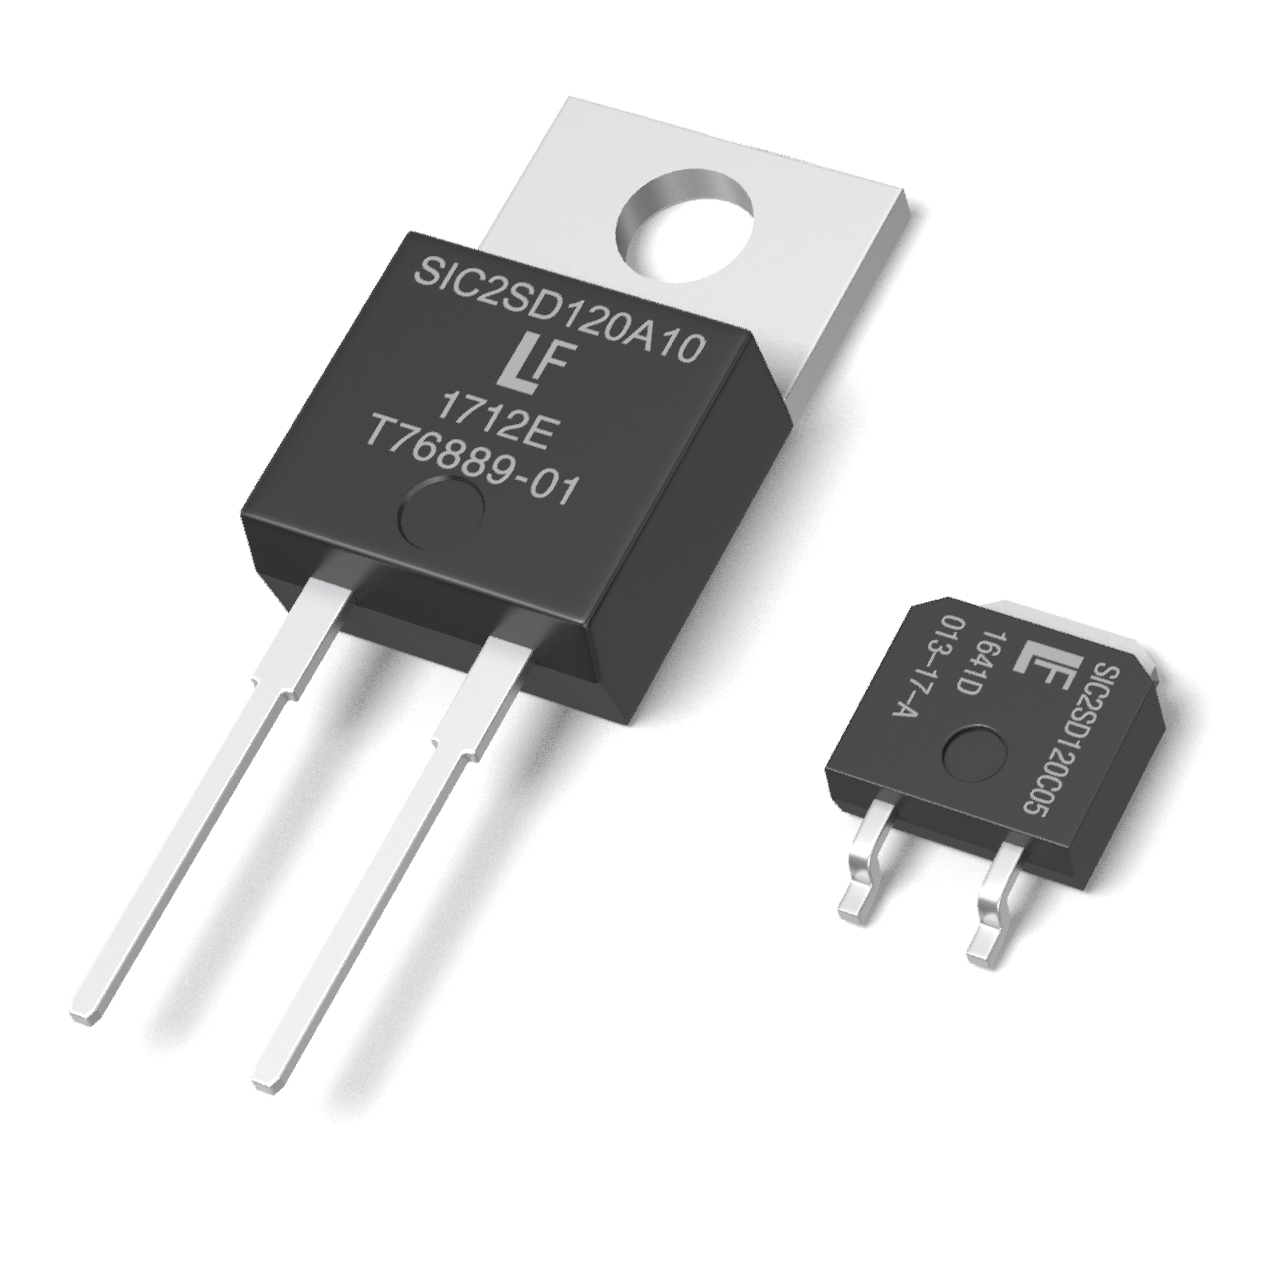 silicon semiconductors devices Anvil semiconductors is developing 3c sic (silicon carbide) material and devices for the power electronics and led markets, with advantages over silicon.